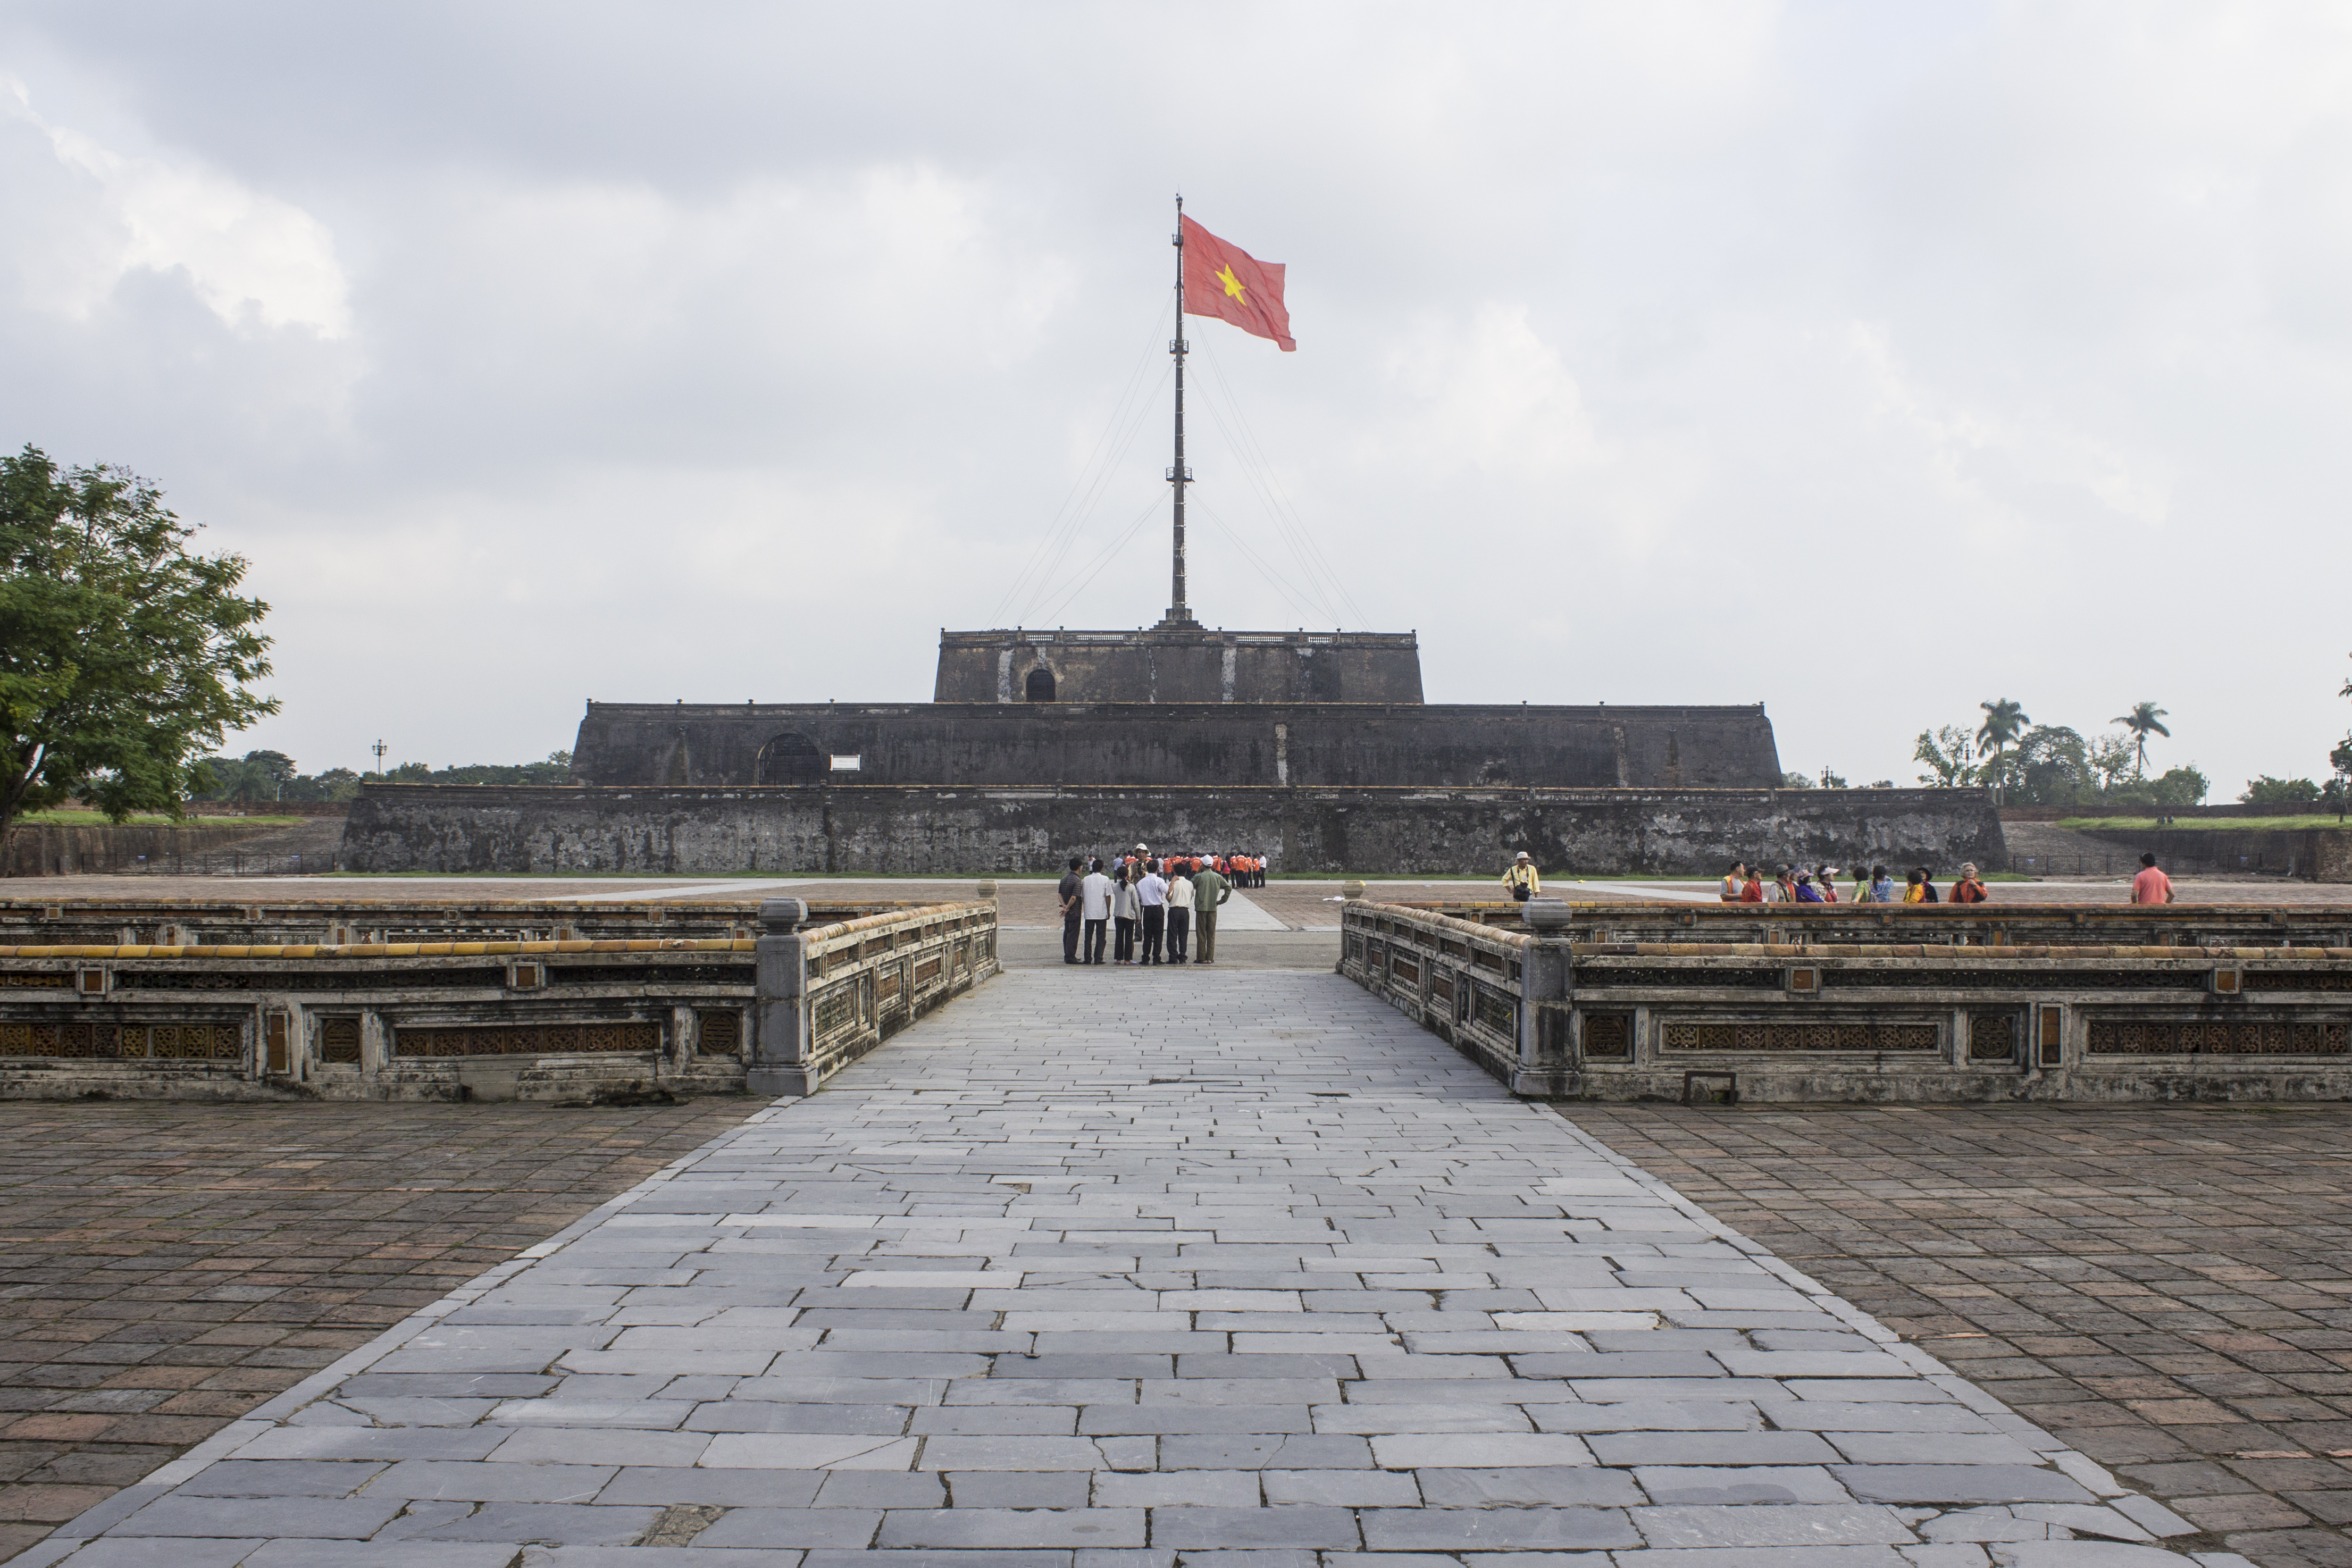 The Vietnamese flag flying proudly above the former palace of the emperor, Hue, Vietnam